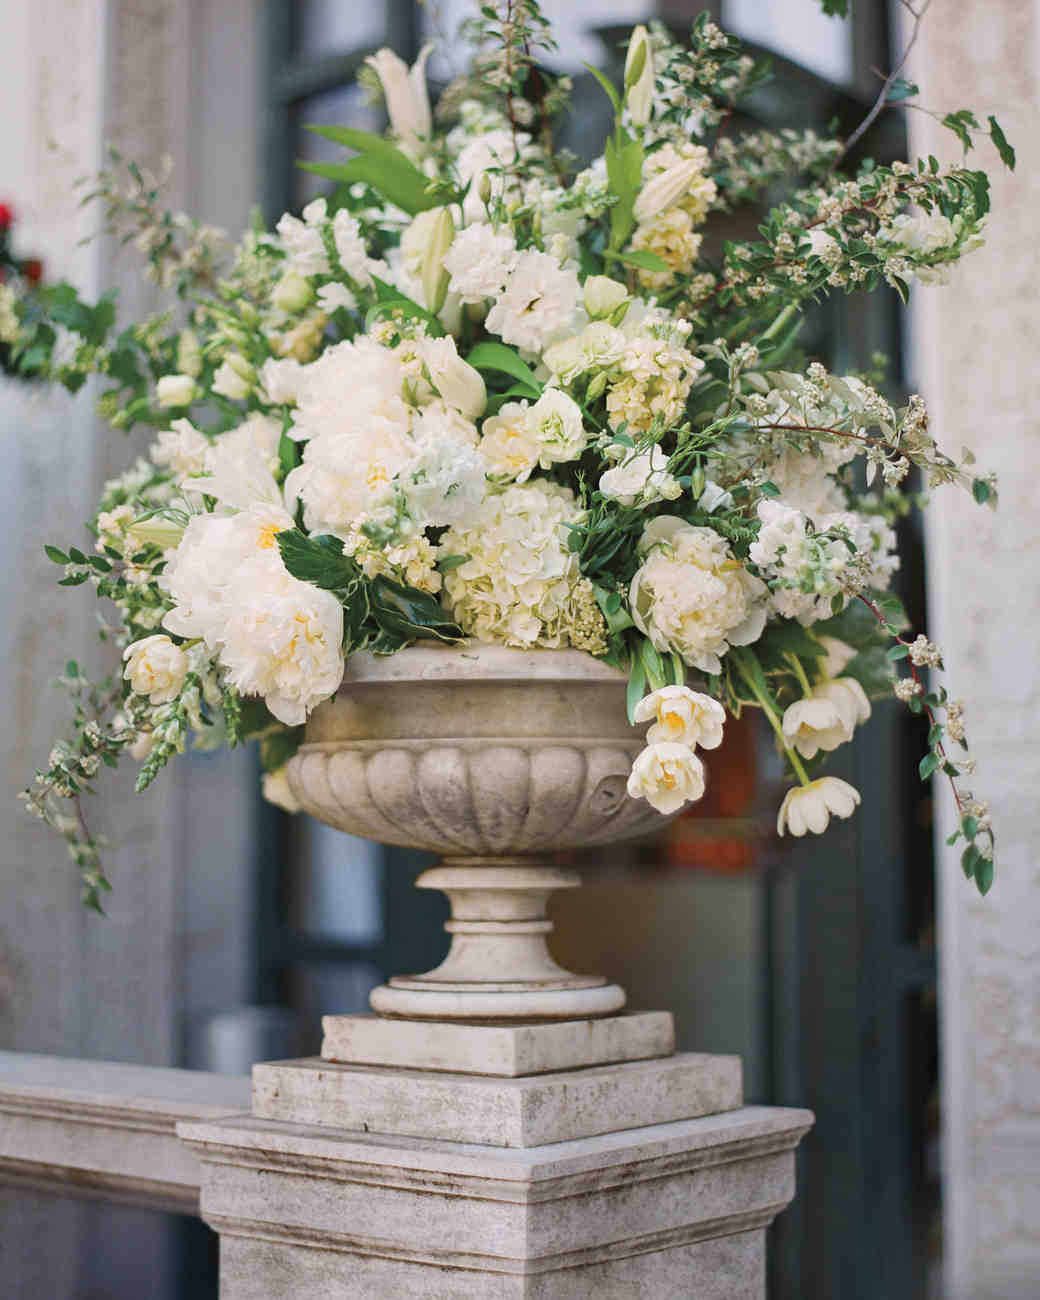 Wedding Church Altar Arrangements: A Formal Ballroom Wedding In A Historic Mansion In San